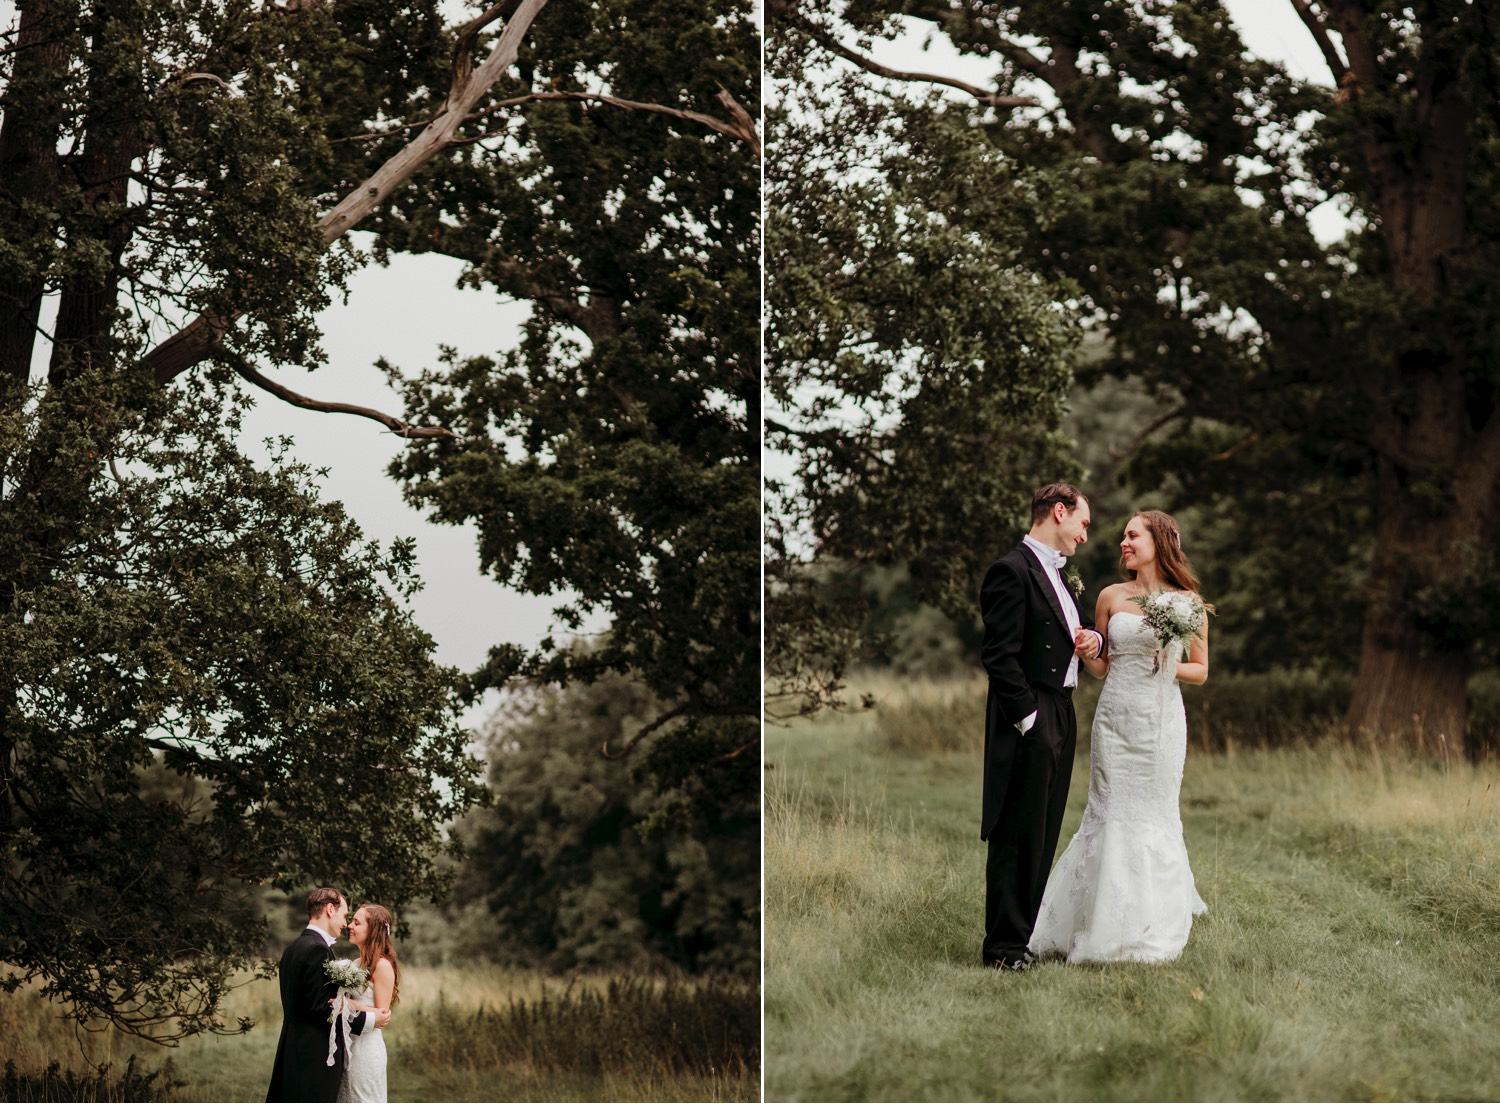 Offley-Place-Country-House-Hotel-Hitchin-wedding-JJ34.jpg